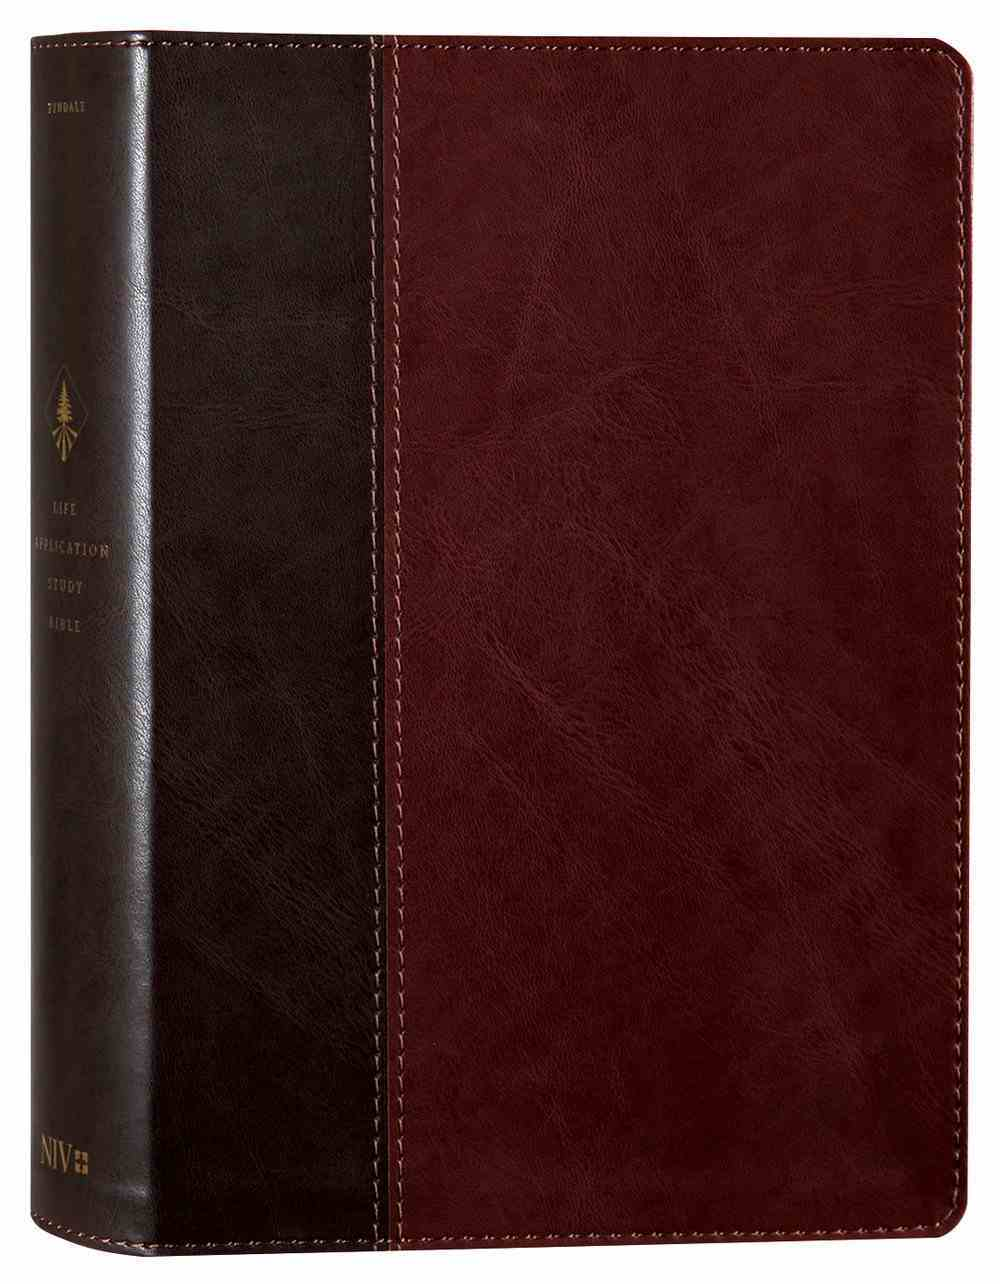 NIV Life Application Study Bible 3rd Edition Brown/Tan (Black Letter Edition) Imitation Leather